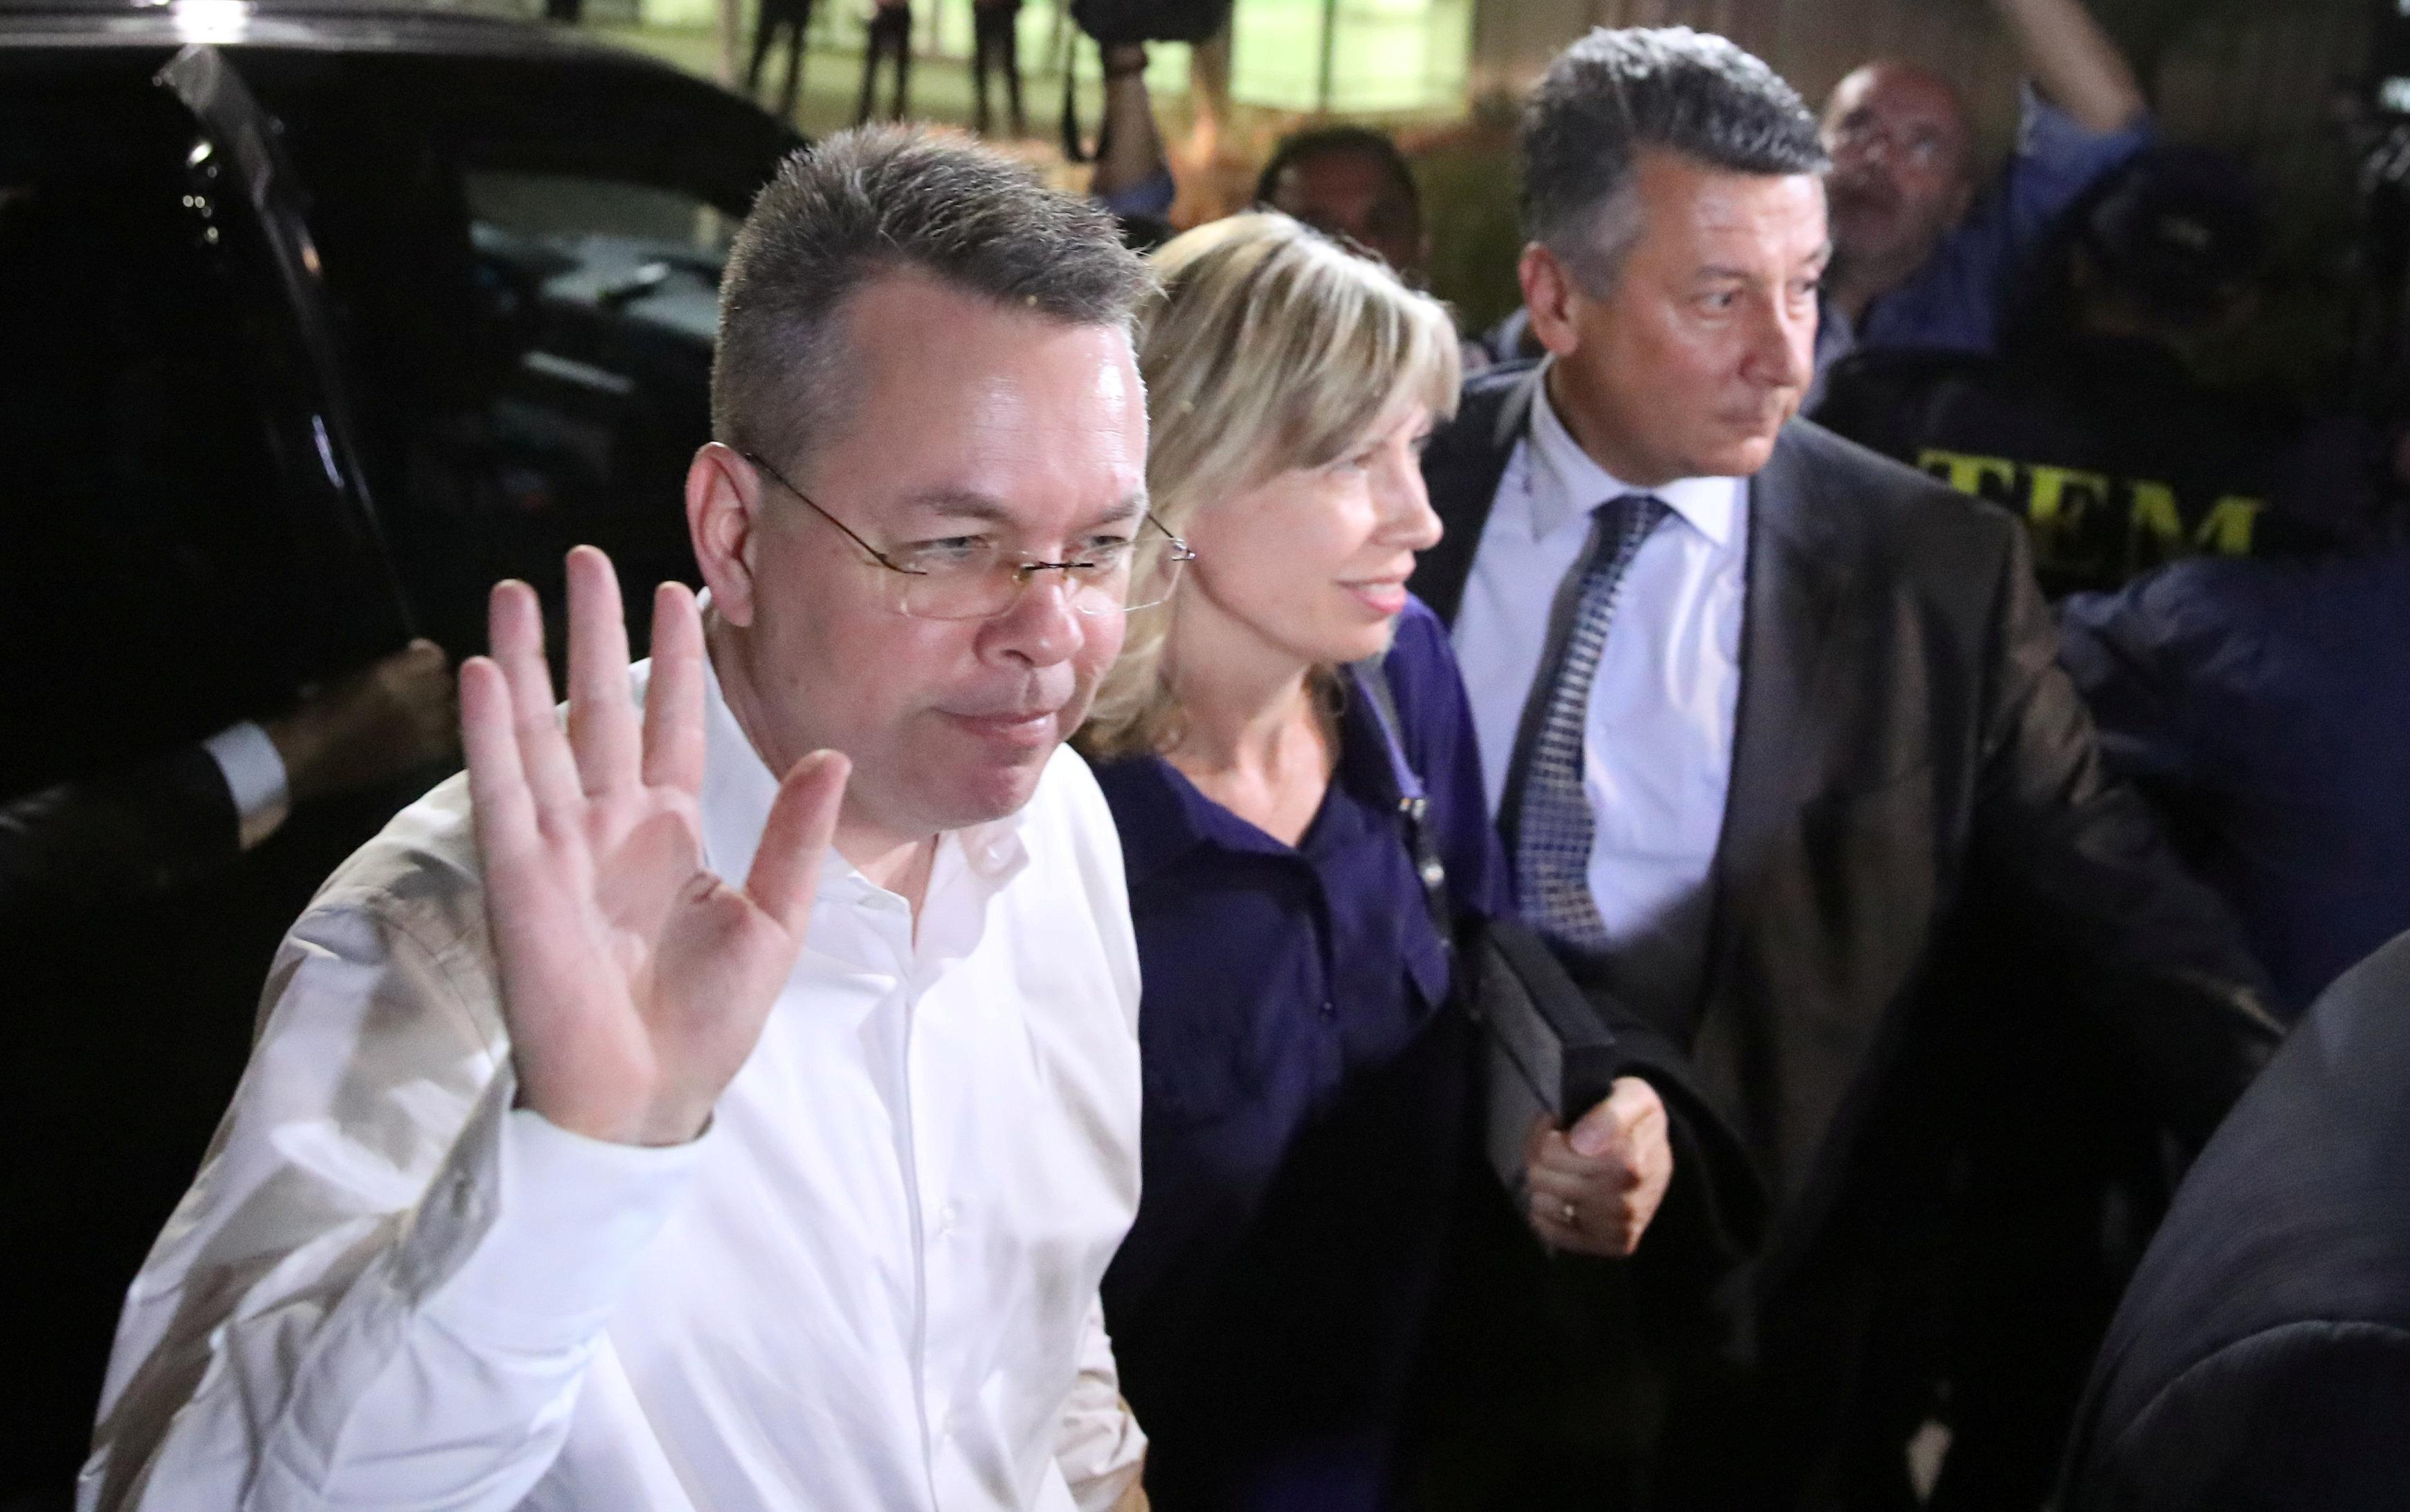 U.S. pastor Brunson arrives home in Turkey after release by court